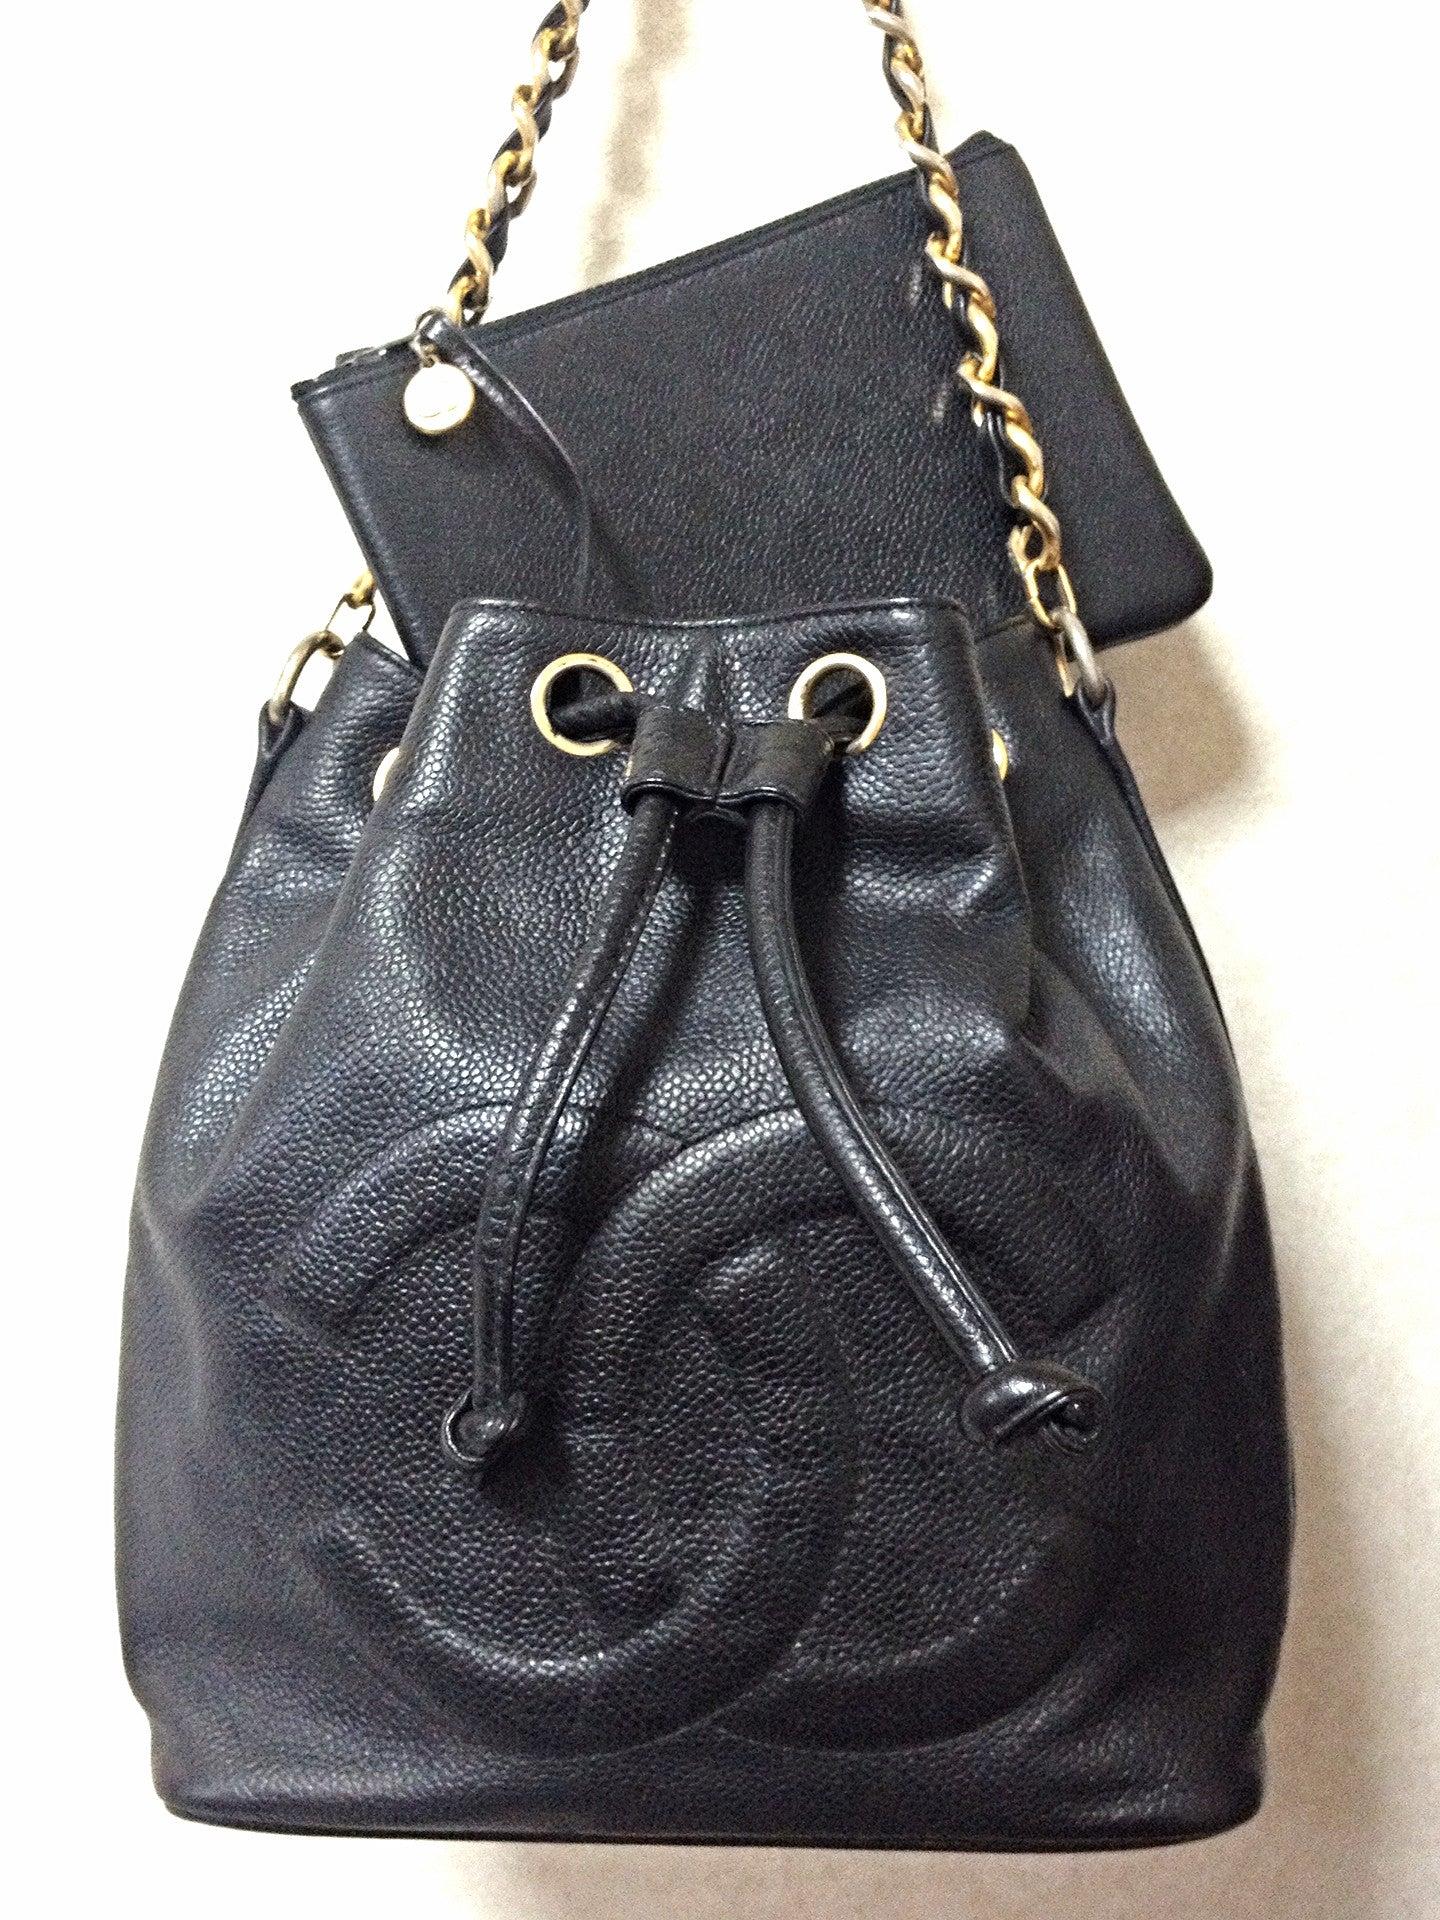 d6f80934834 Vintage CHANEL black caviar leather hobo bucket shoulder bag with golden  chain strap, drawstrings,. Sale